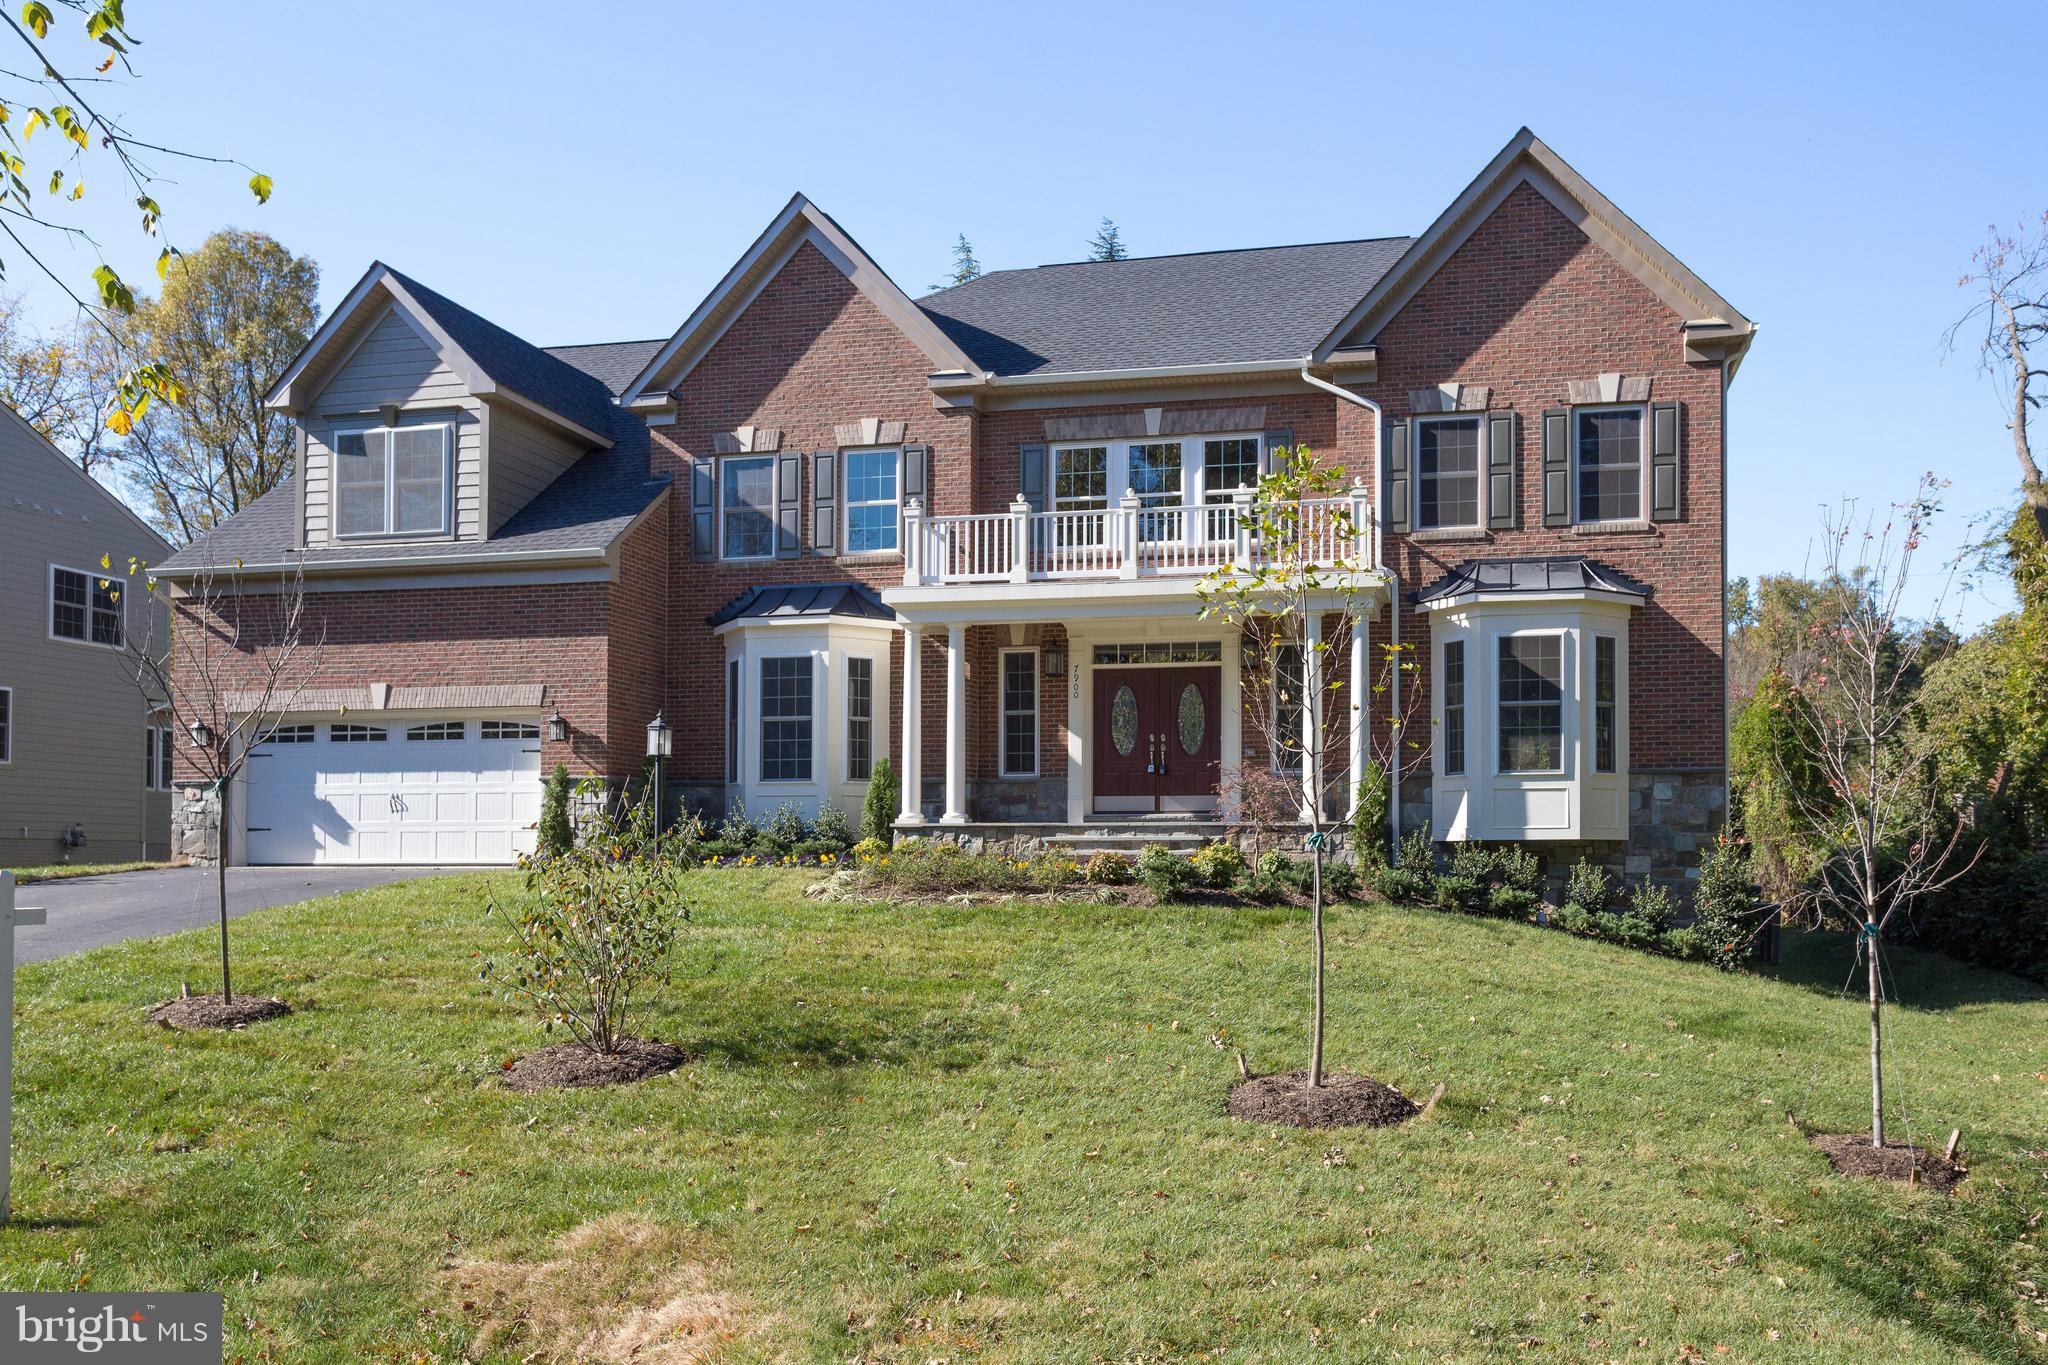 Sensational NEW CONSTRUCTION col w/6100+sqft built by NVP. 1 block to River Farm, a 25AC George Washington Farm great for walking and jogging! Elegant accents, trim work, coffered ceil, wood & more! Massive twin staircase, 2-story great rm w/frpl & wind wall, bright sun rm off chef's kit w/large isl & SS appls, authors lib, formal LR & DR. Luxurious master ste on UL & full fin walk-up LL.